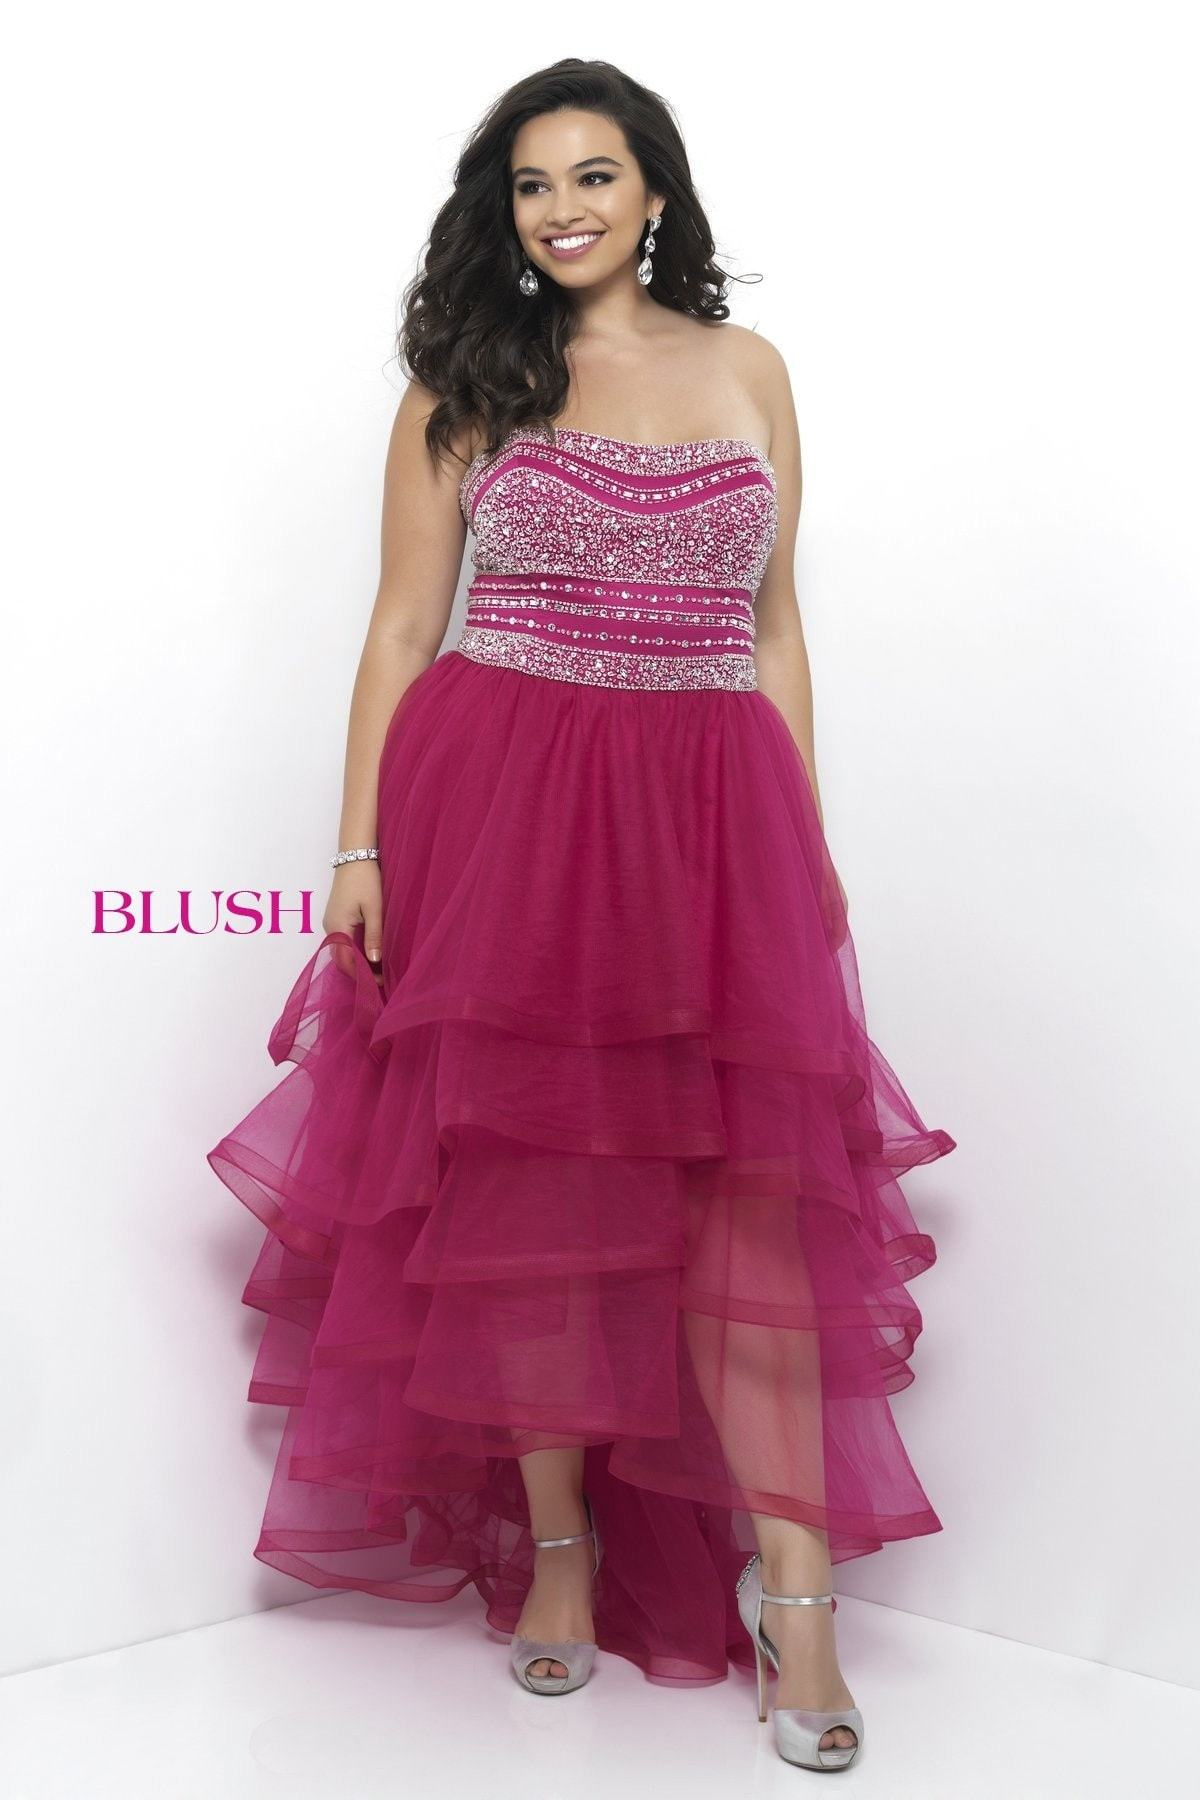 Blush Too (PLUS) 11271W Magenta Strapless Tulle High Low Prom Dress